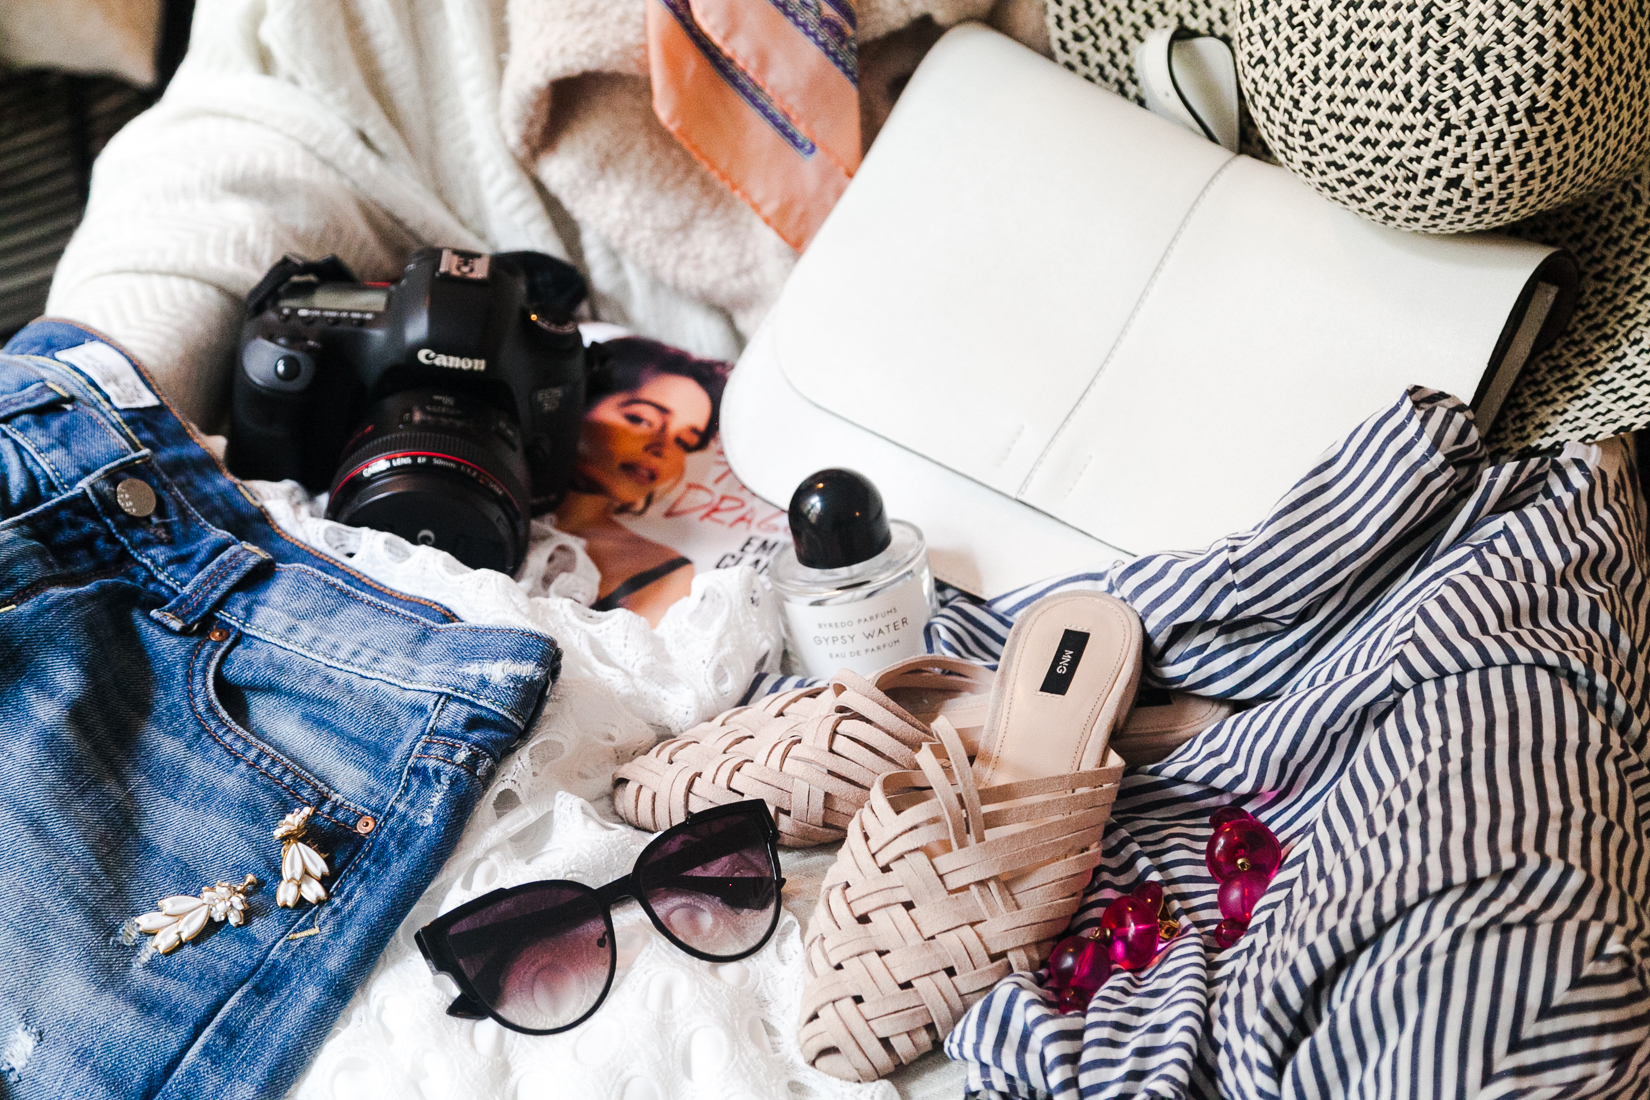 NoMad Luxuries September IT List flatlay beauty, fashion and decor favorites